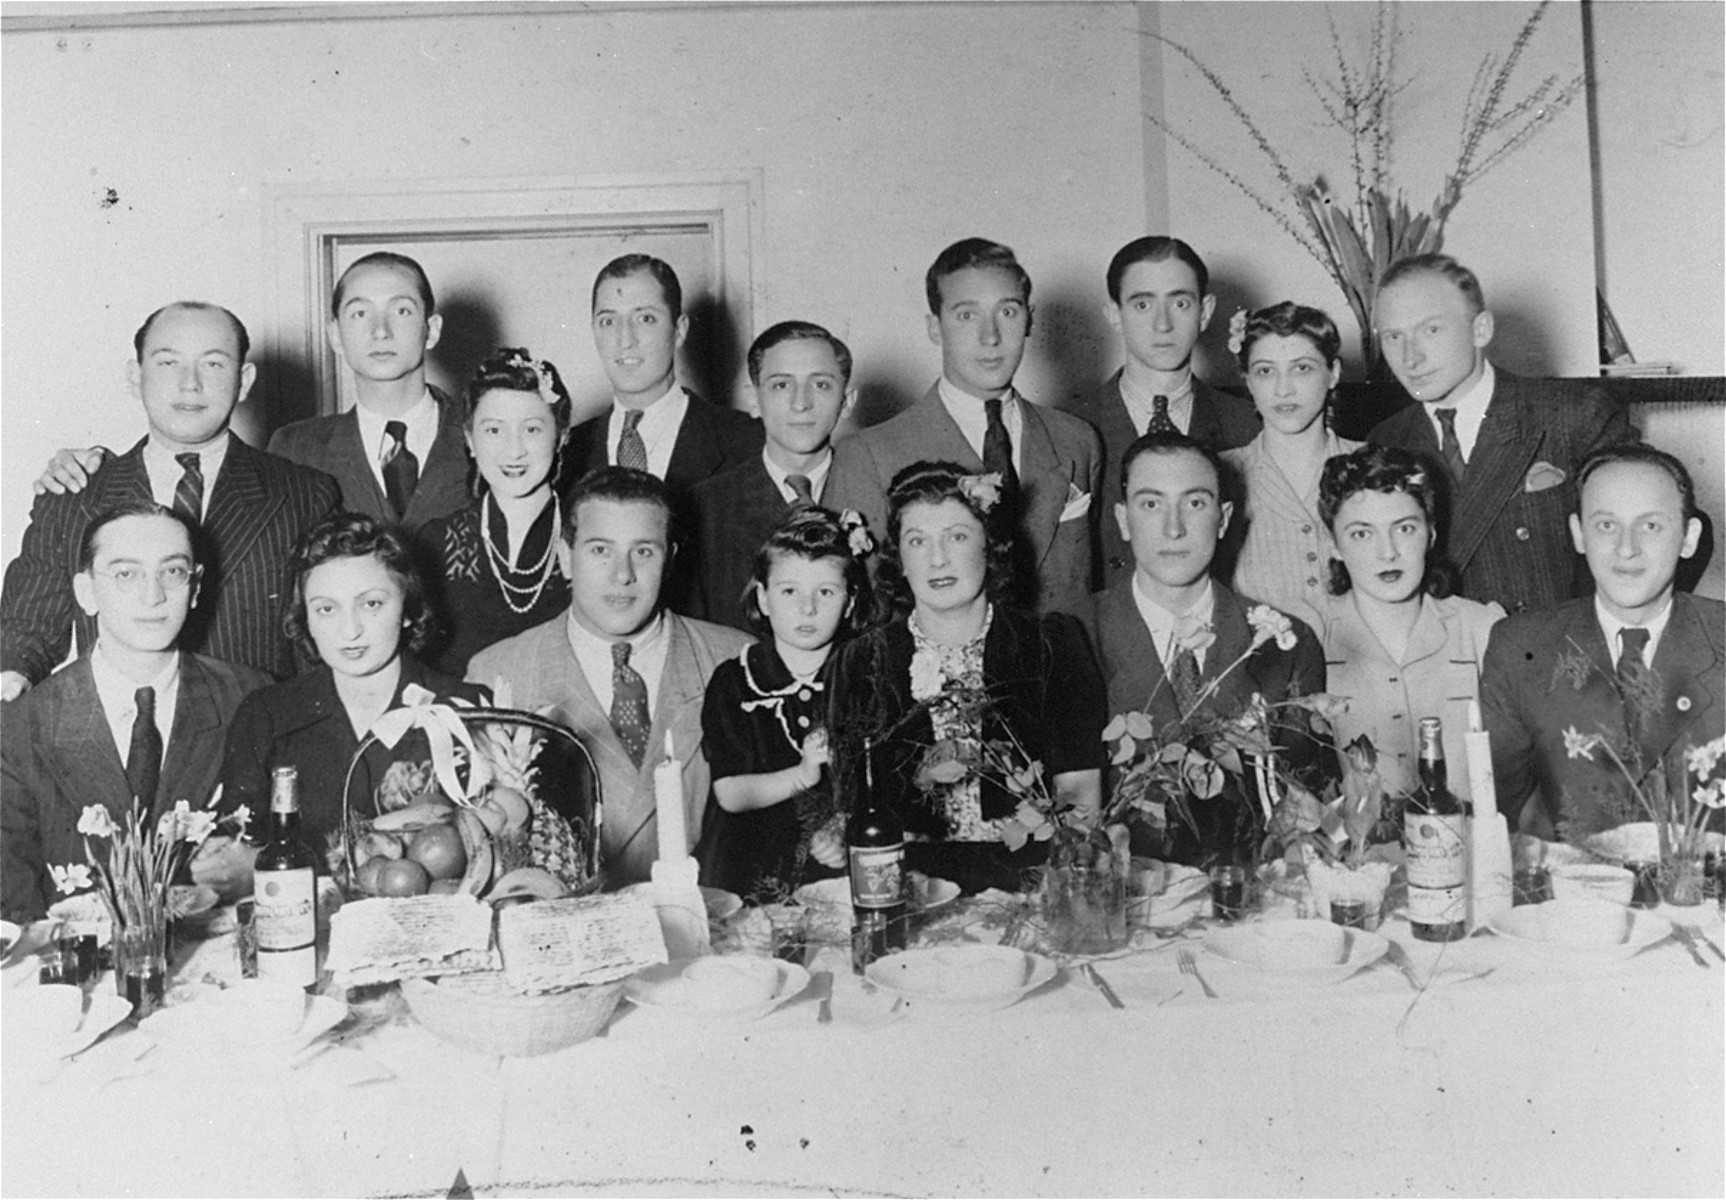 Group portrait of Jewish refugees in Kobe, Japan, who escaped from Europe with visas signed by Chiune Sugihara.